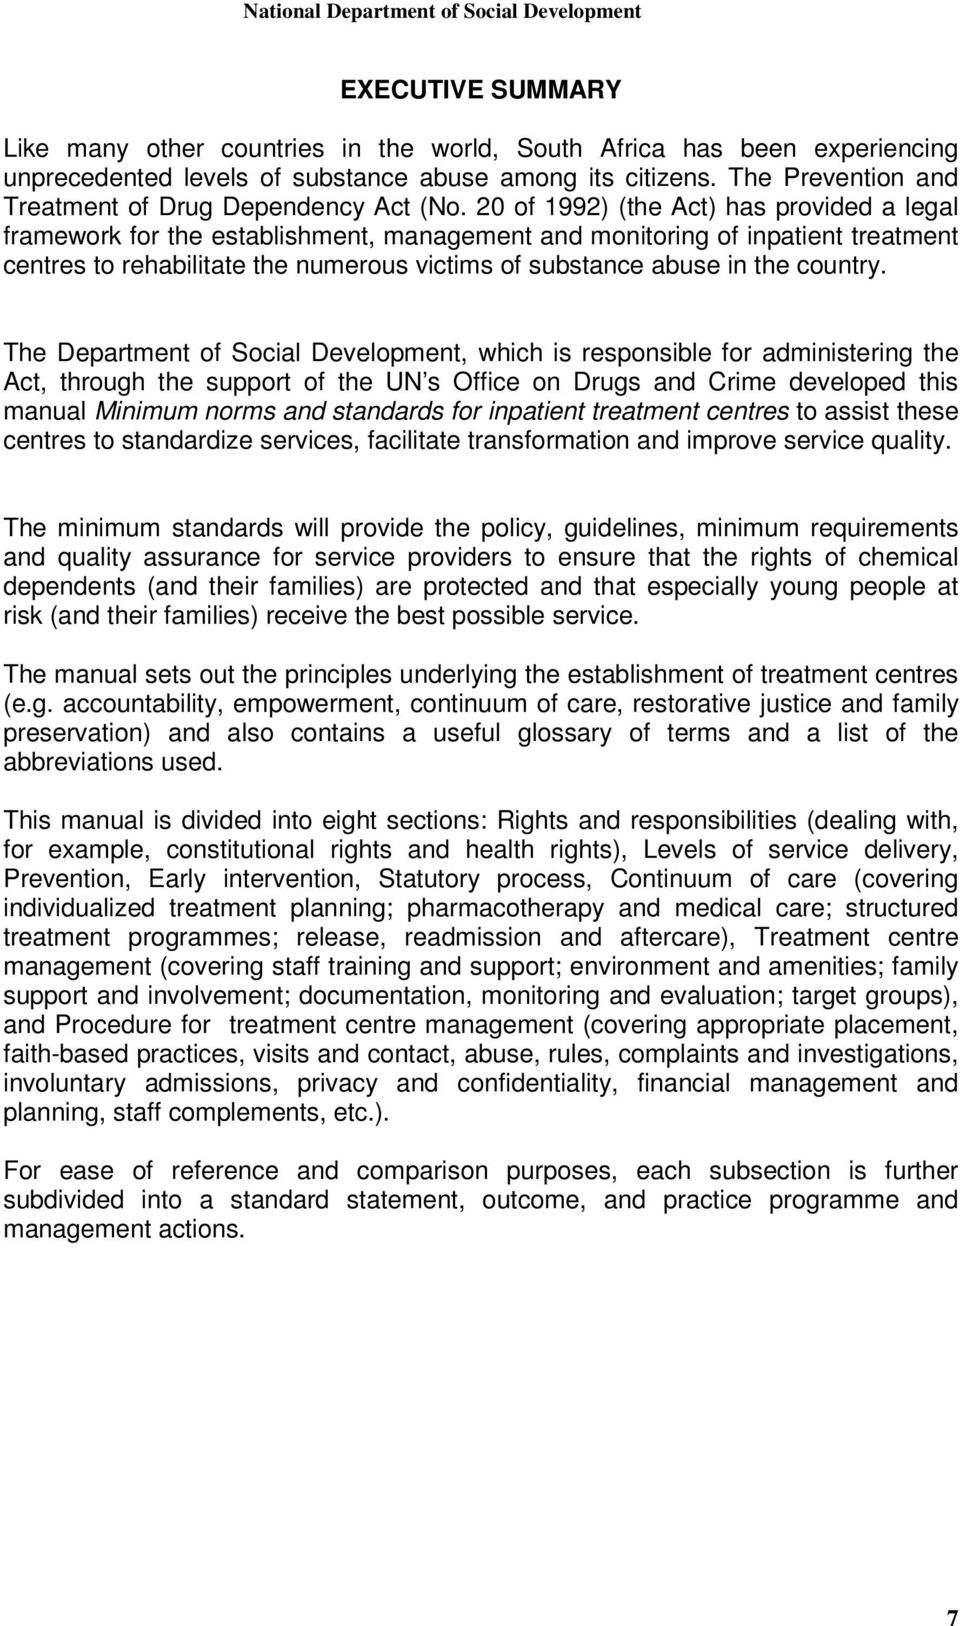 20 of 1992) (the Act) has provided a legal framework for the establishment, management and monitoring of inpatient treatment centres to rehabilitate the numerous victims of substance abuse in the